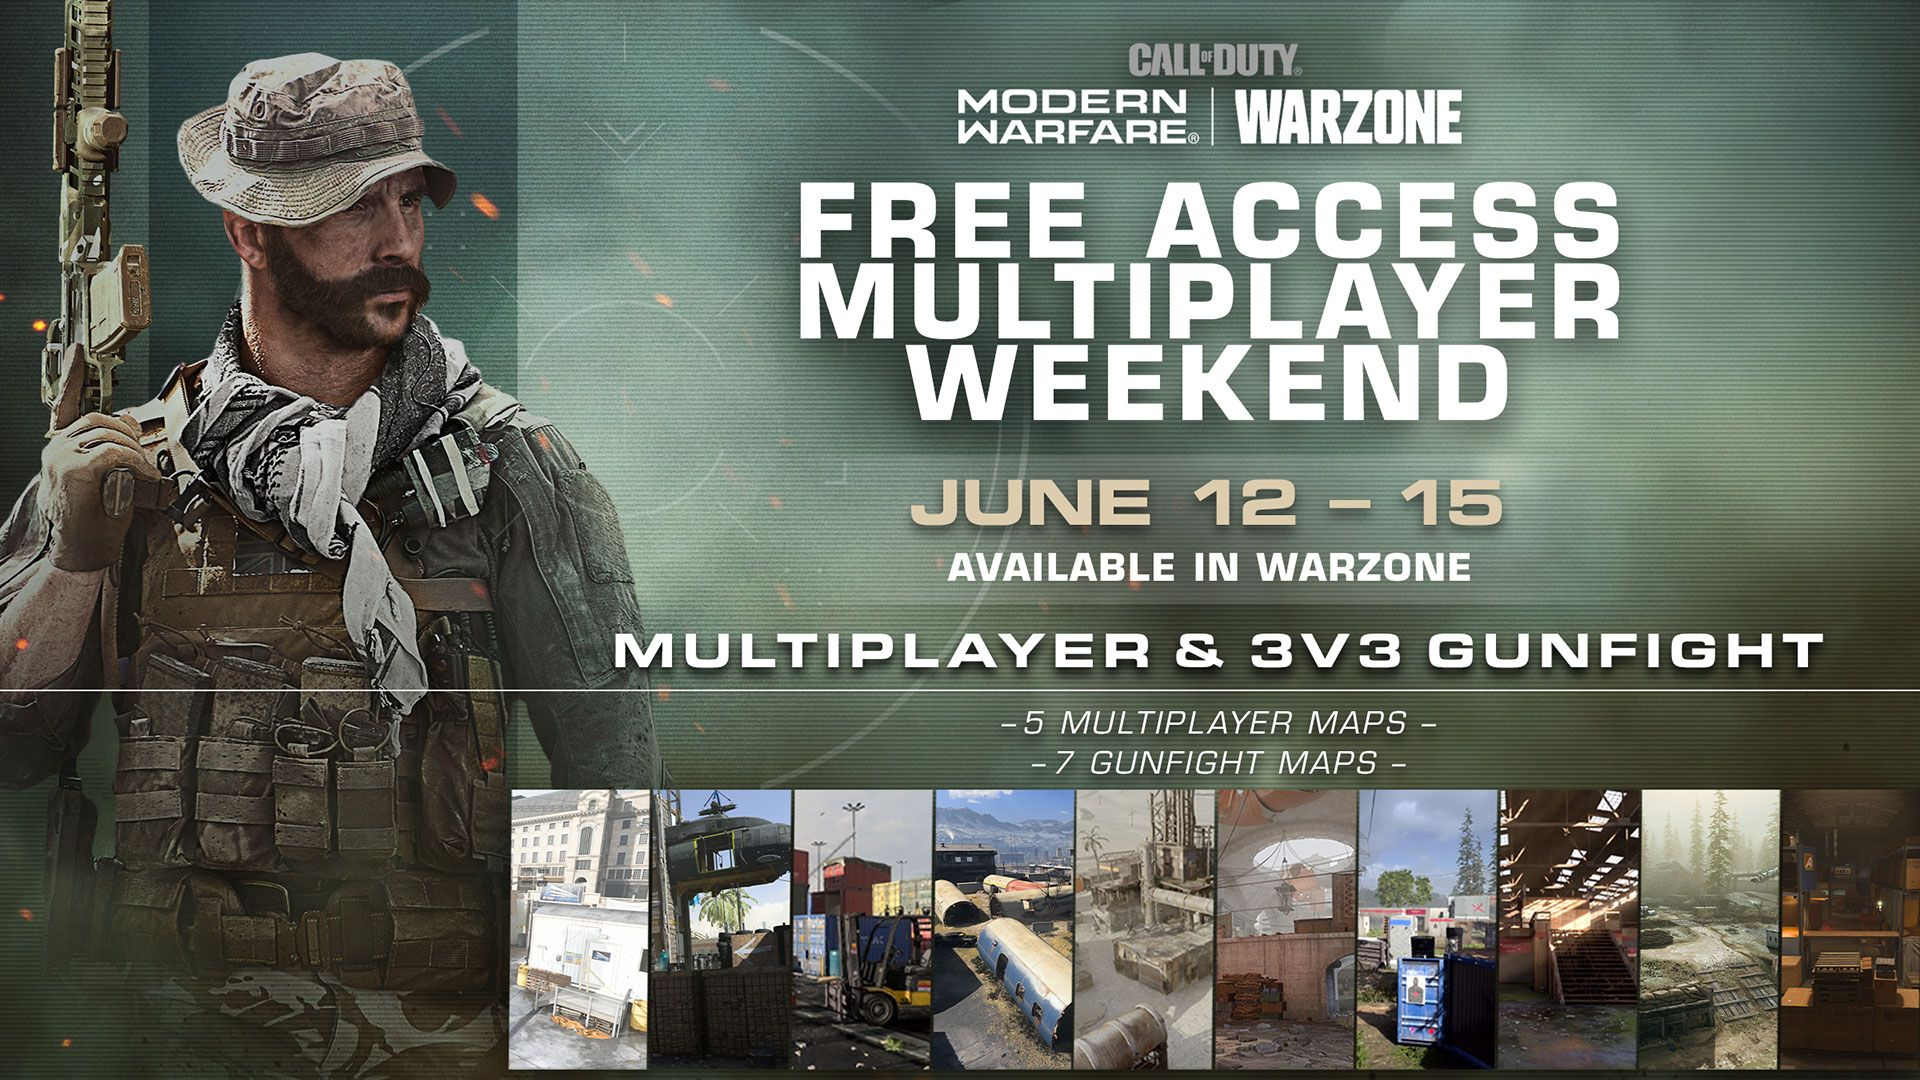 Call Of Duty Season 4 Modern Warfare Warzone Update Is Now Live